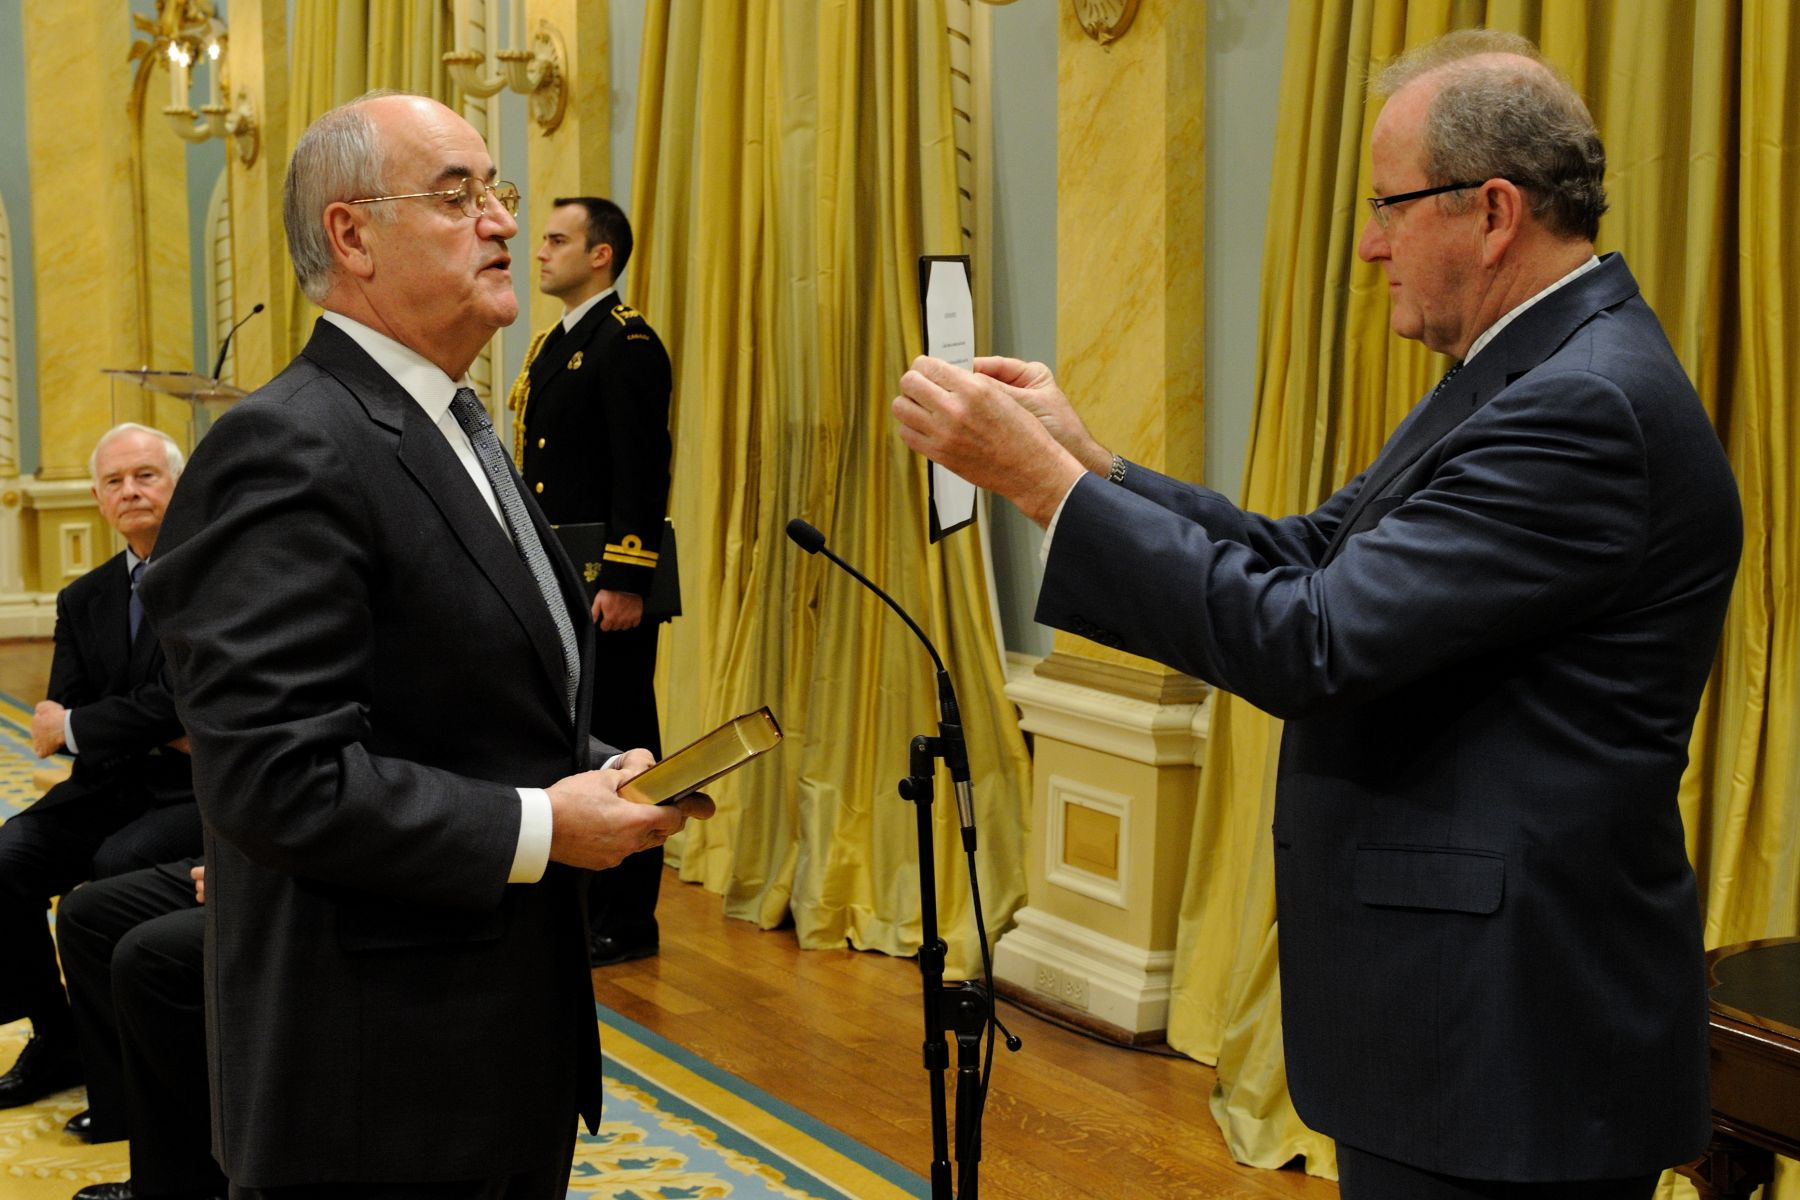 The Honourable Julian Fantino was sworn-in as Minister of State (Seniors).